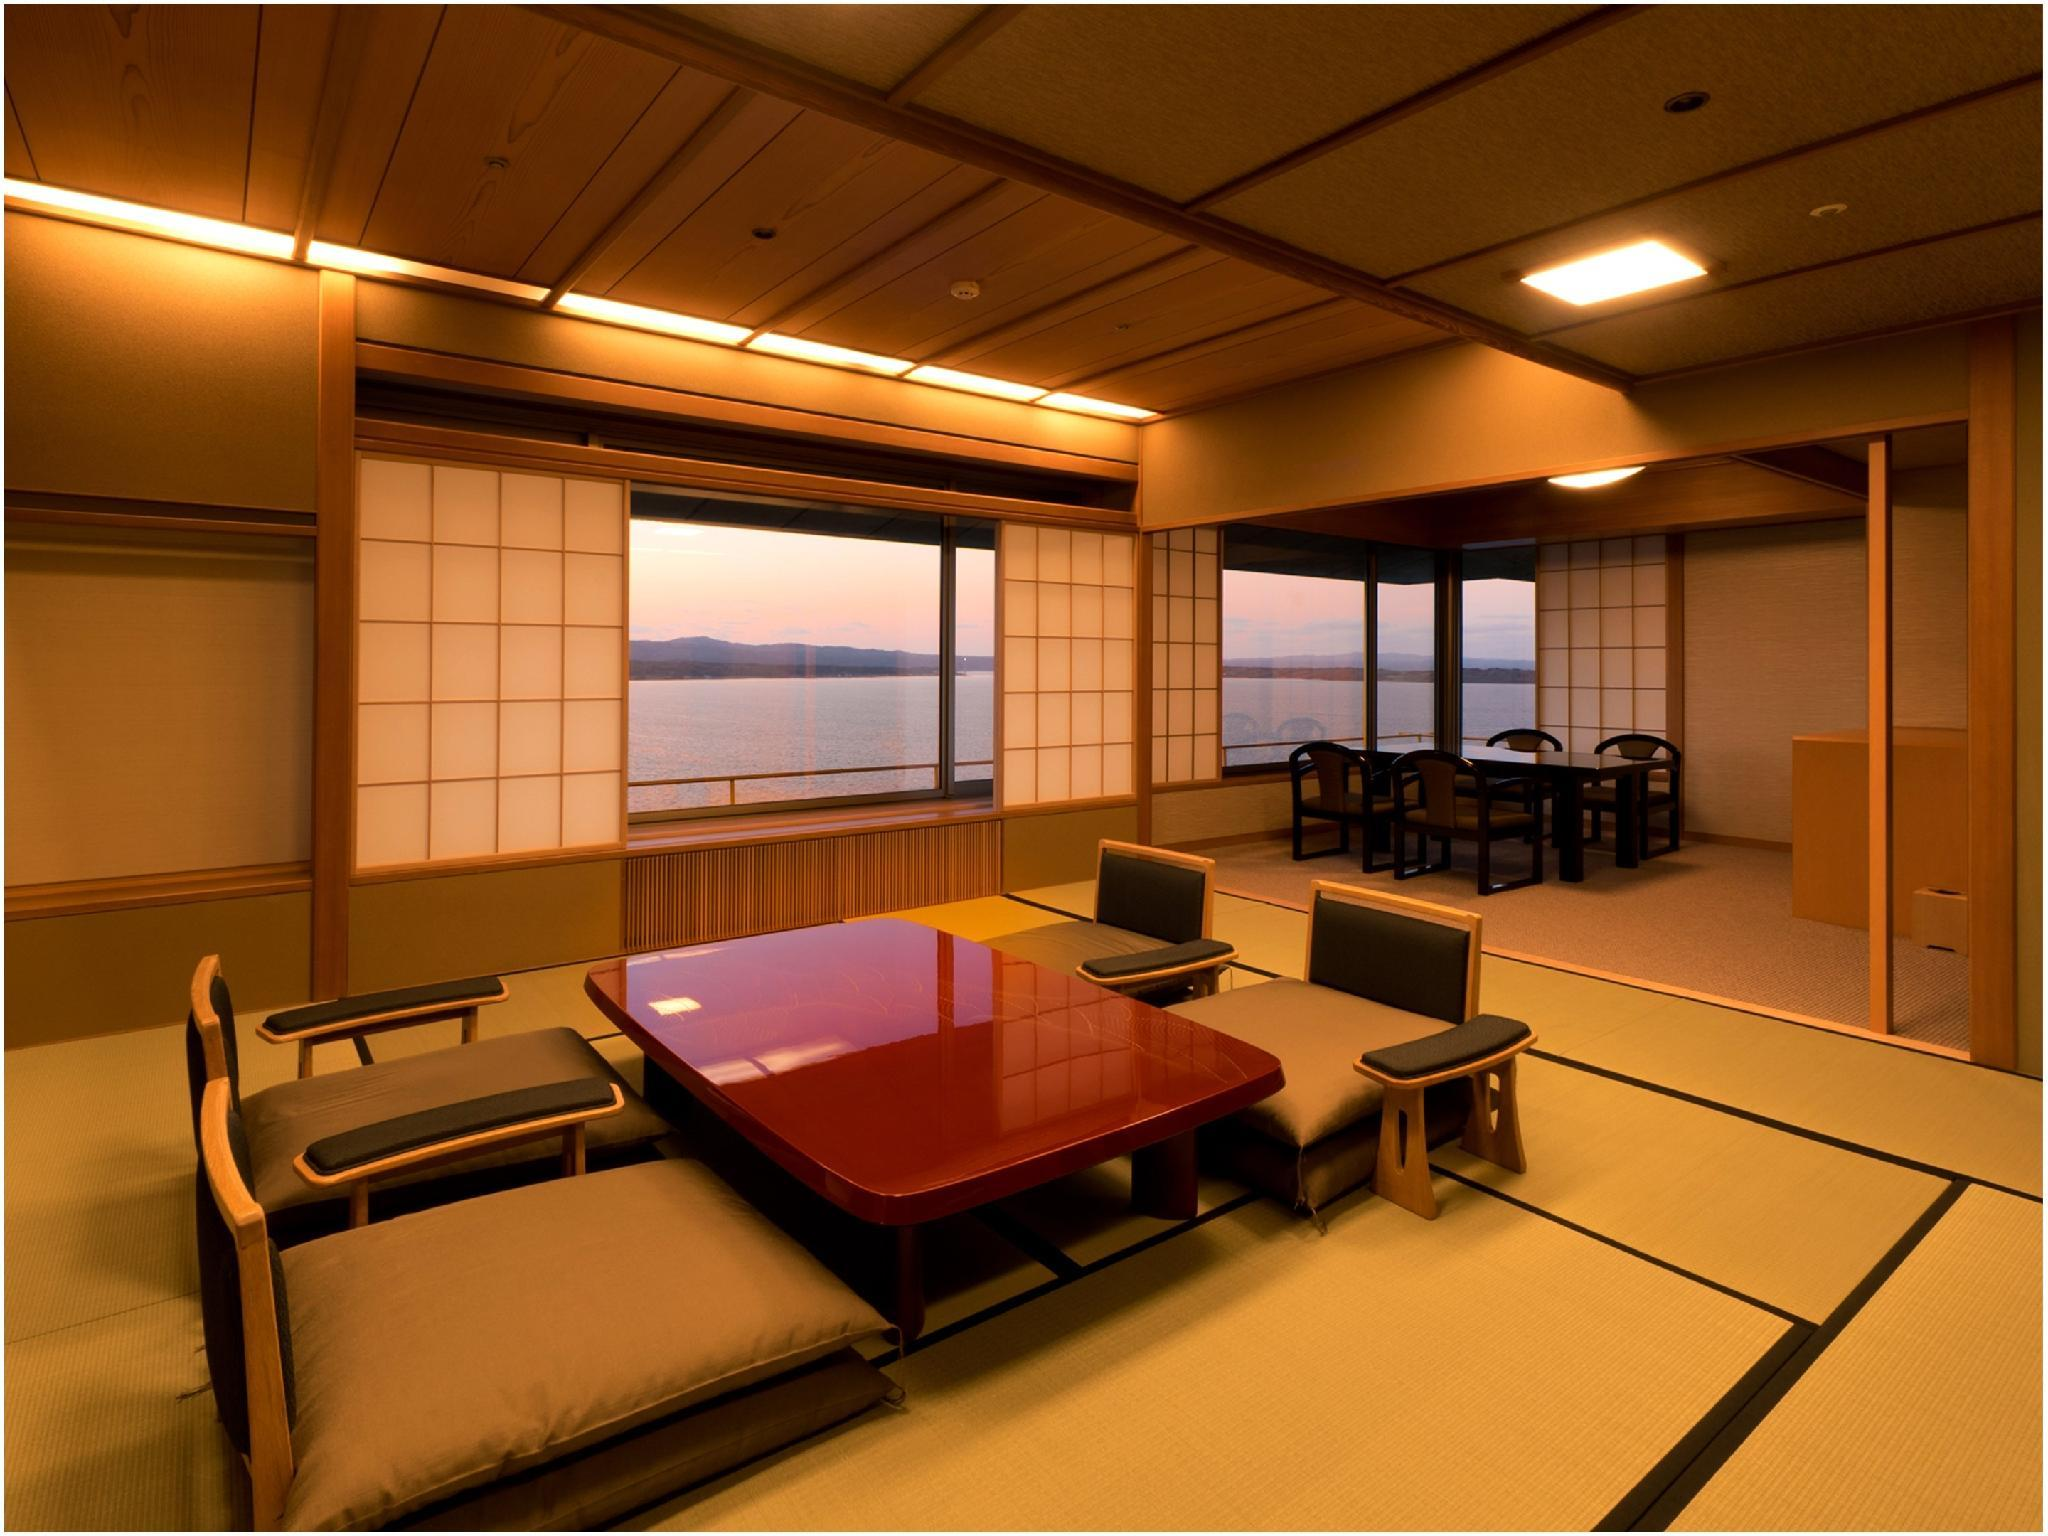 雪月花 特選樓層 海景禁菸豪華和洋式房(2張單人床) (Deluxe Japanese/Western-style Room (Twin Beds, Setsugetsuka Tokusenkai) *Ocean side view, No smoking)